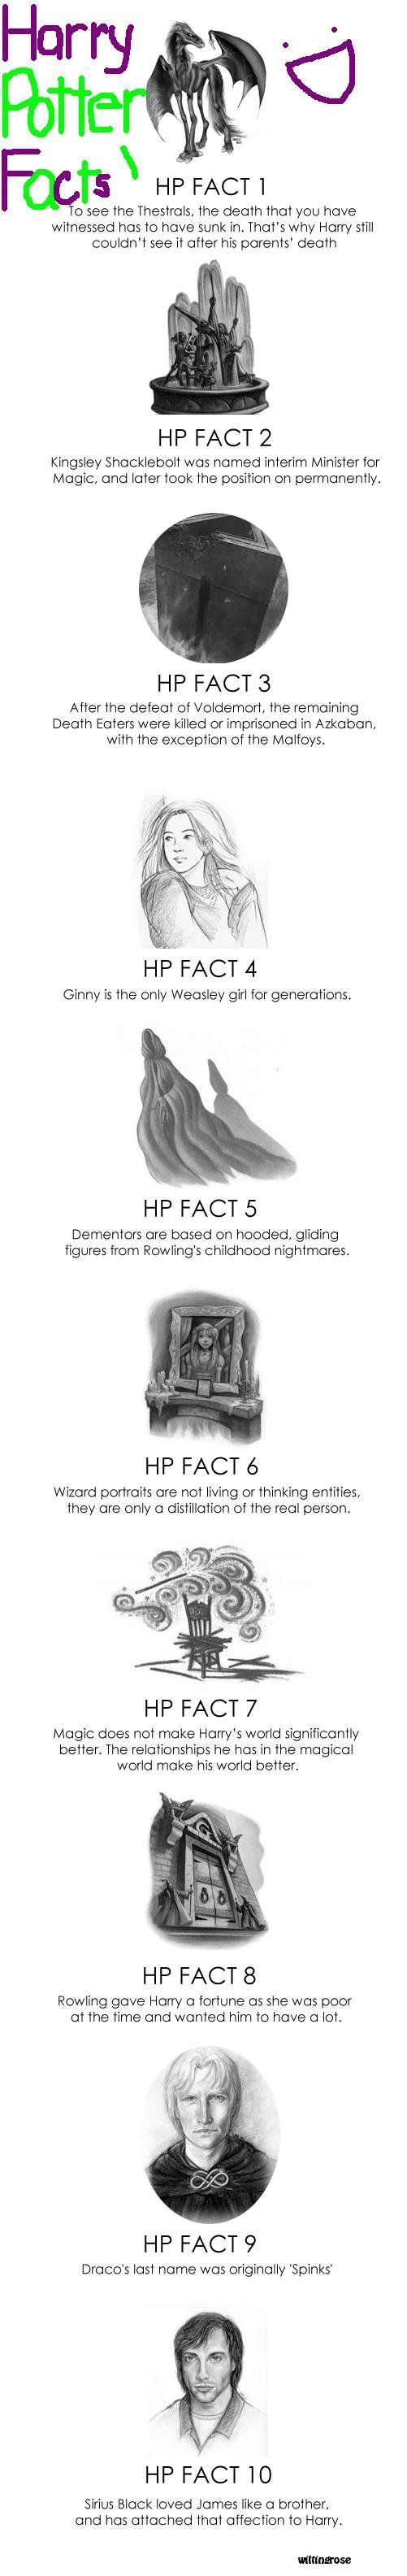 Facts. I agree with all of them except seven. Everything in Harry Potter makes it better.